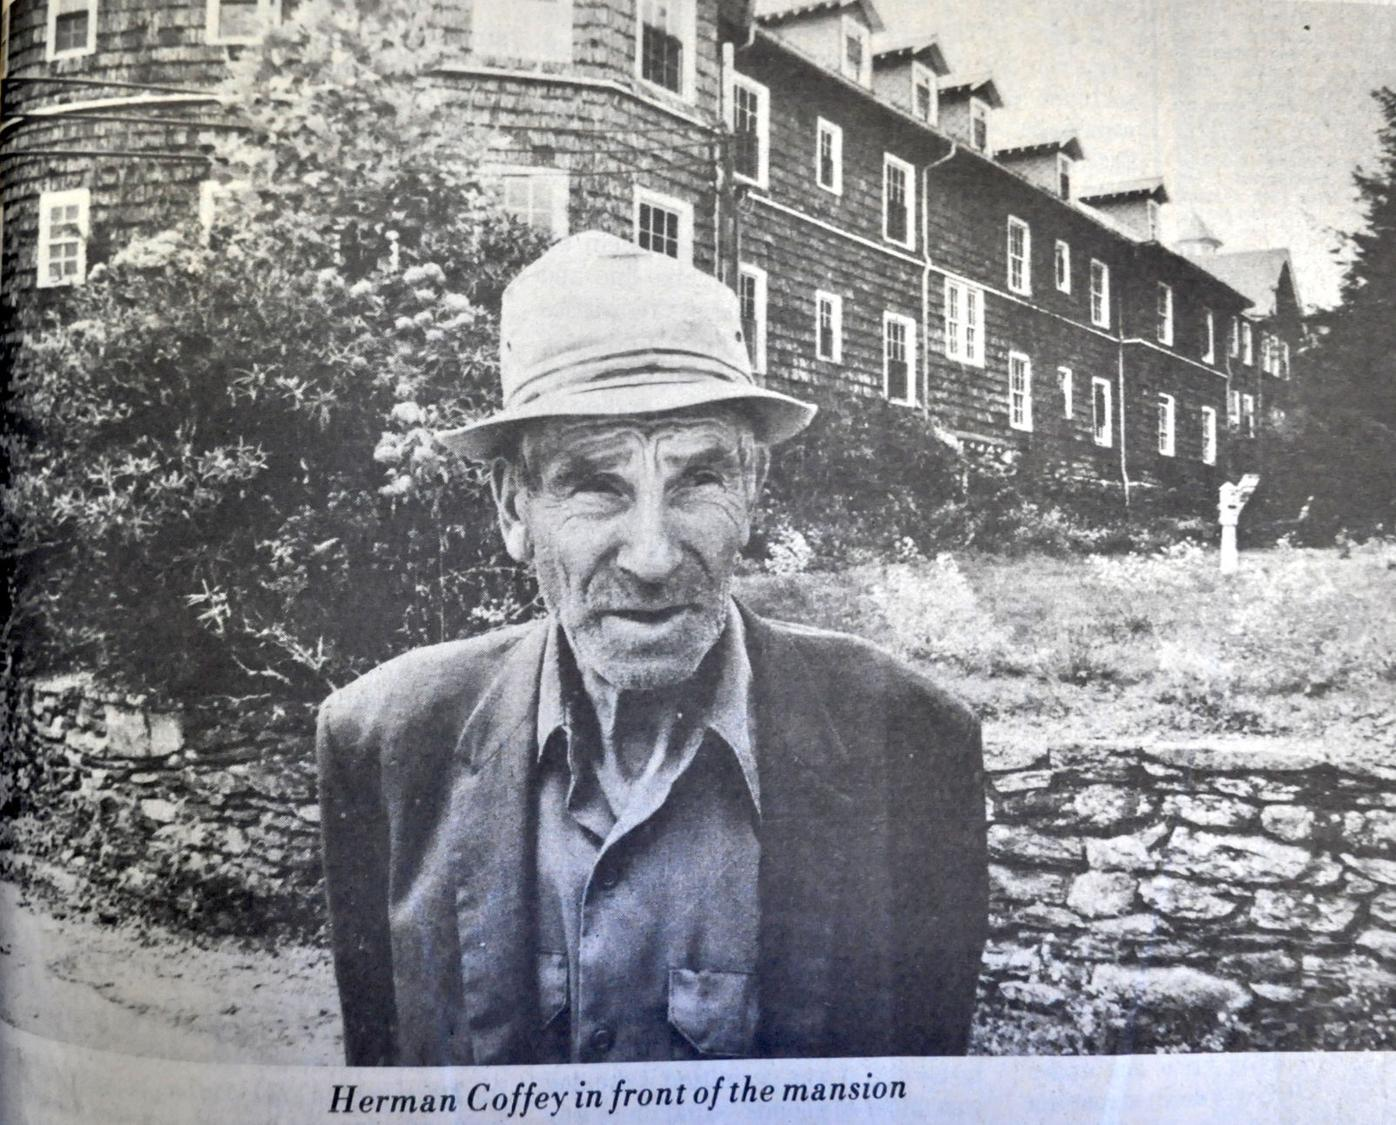 Herman Coffey, caretaker of Mayview Manor